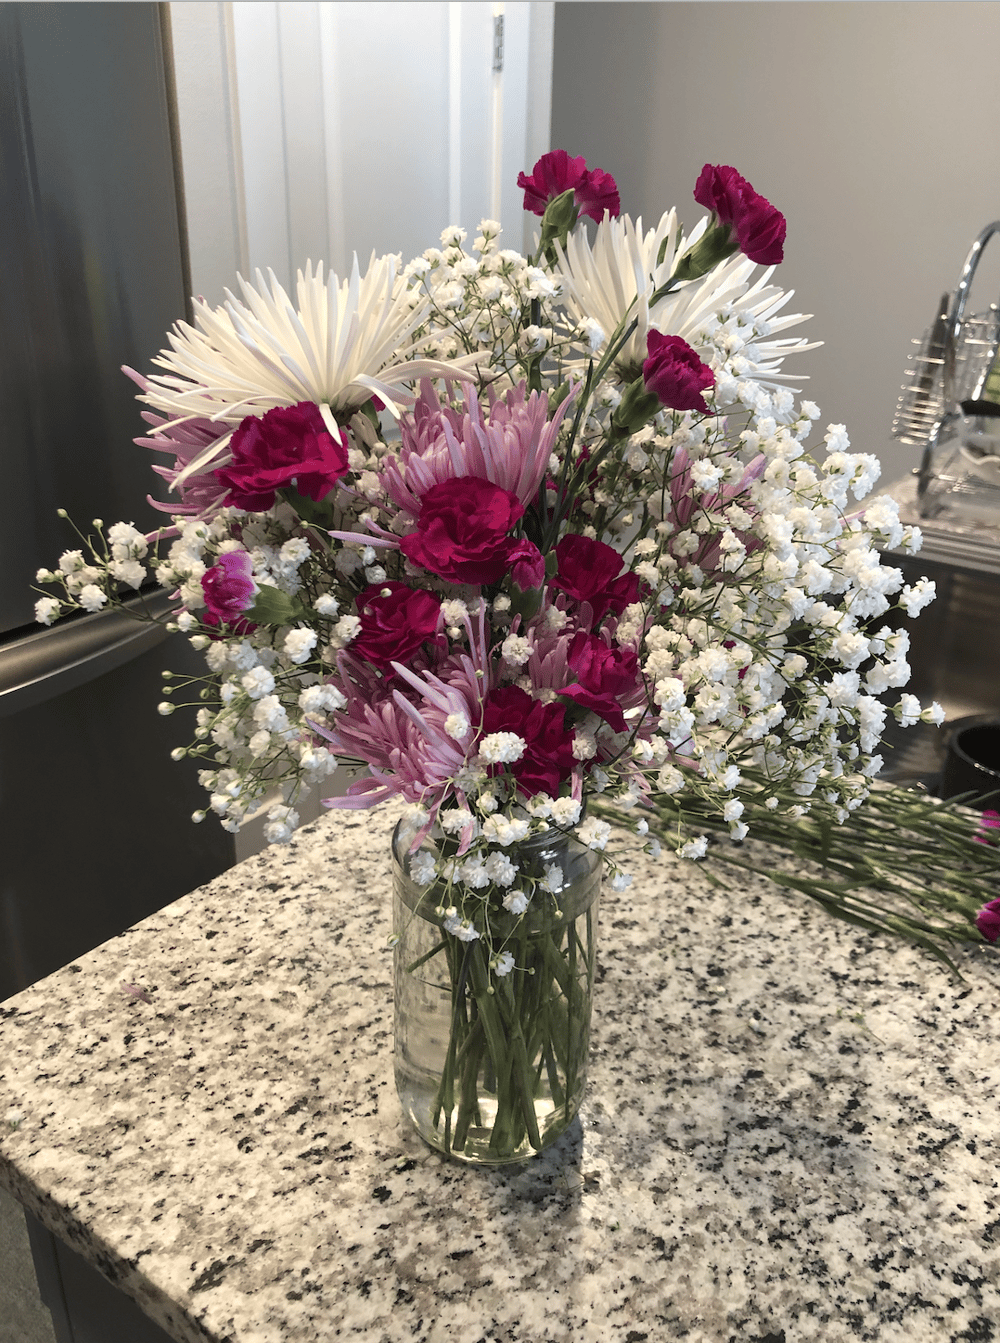 My First (and second!) Vase Arrangement - image 1 - student project